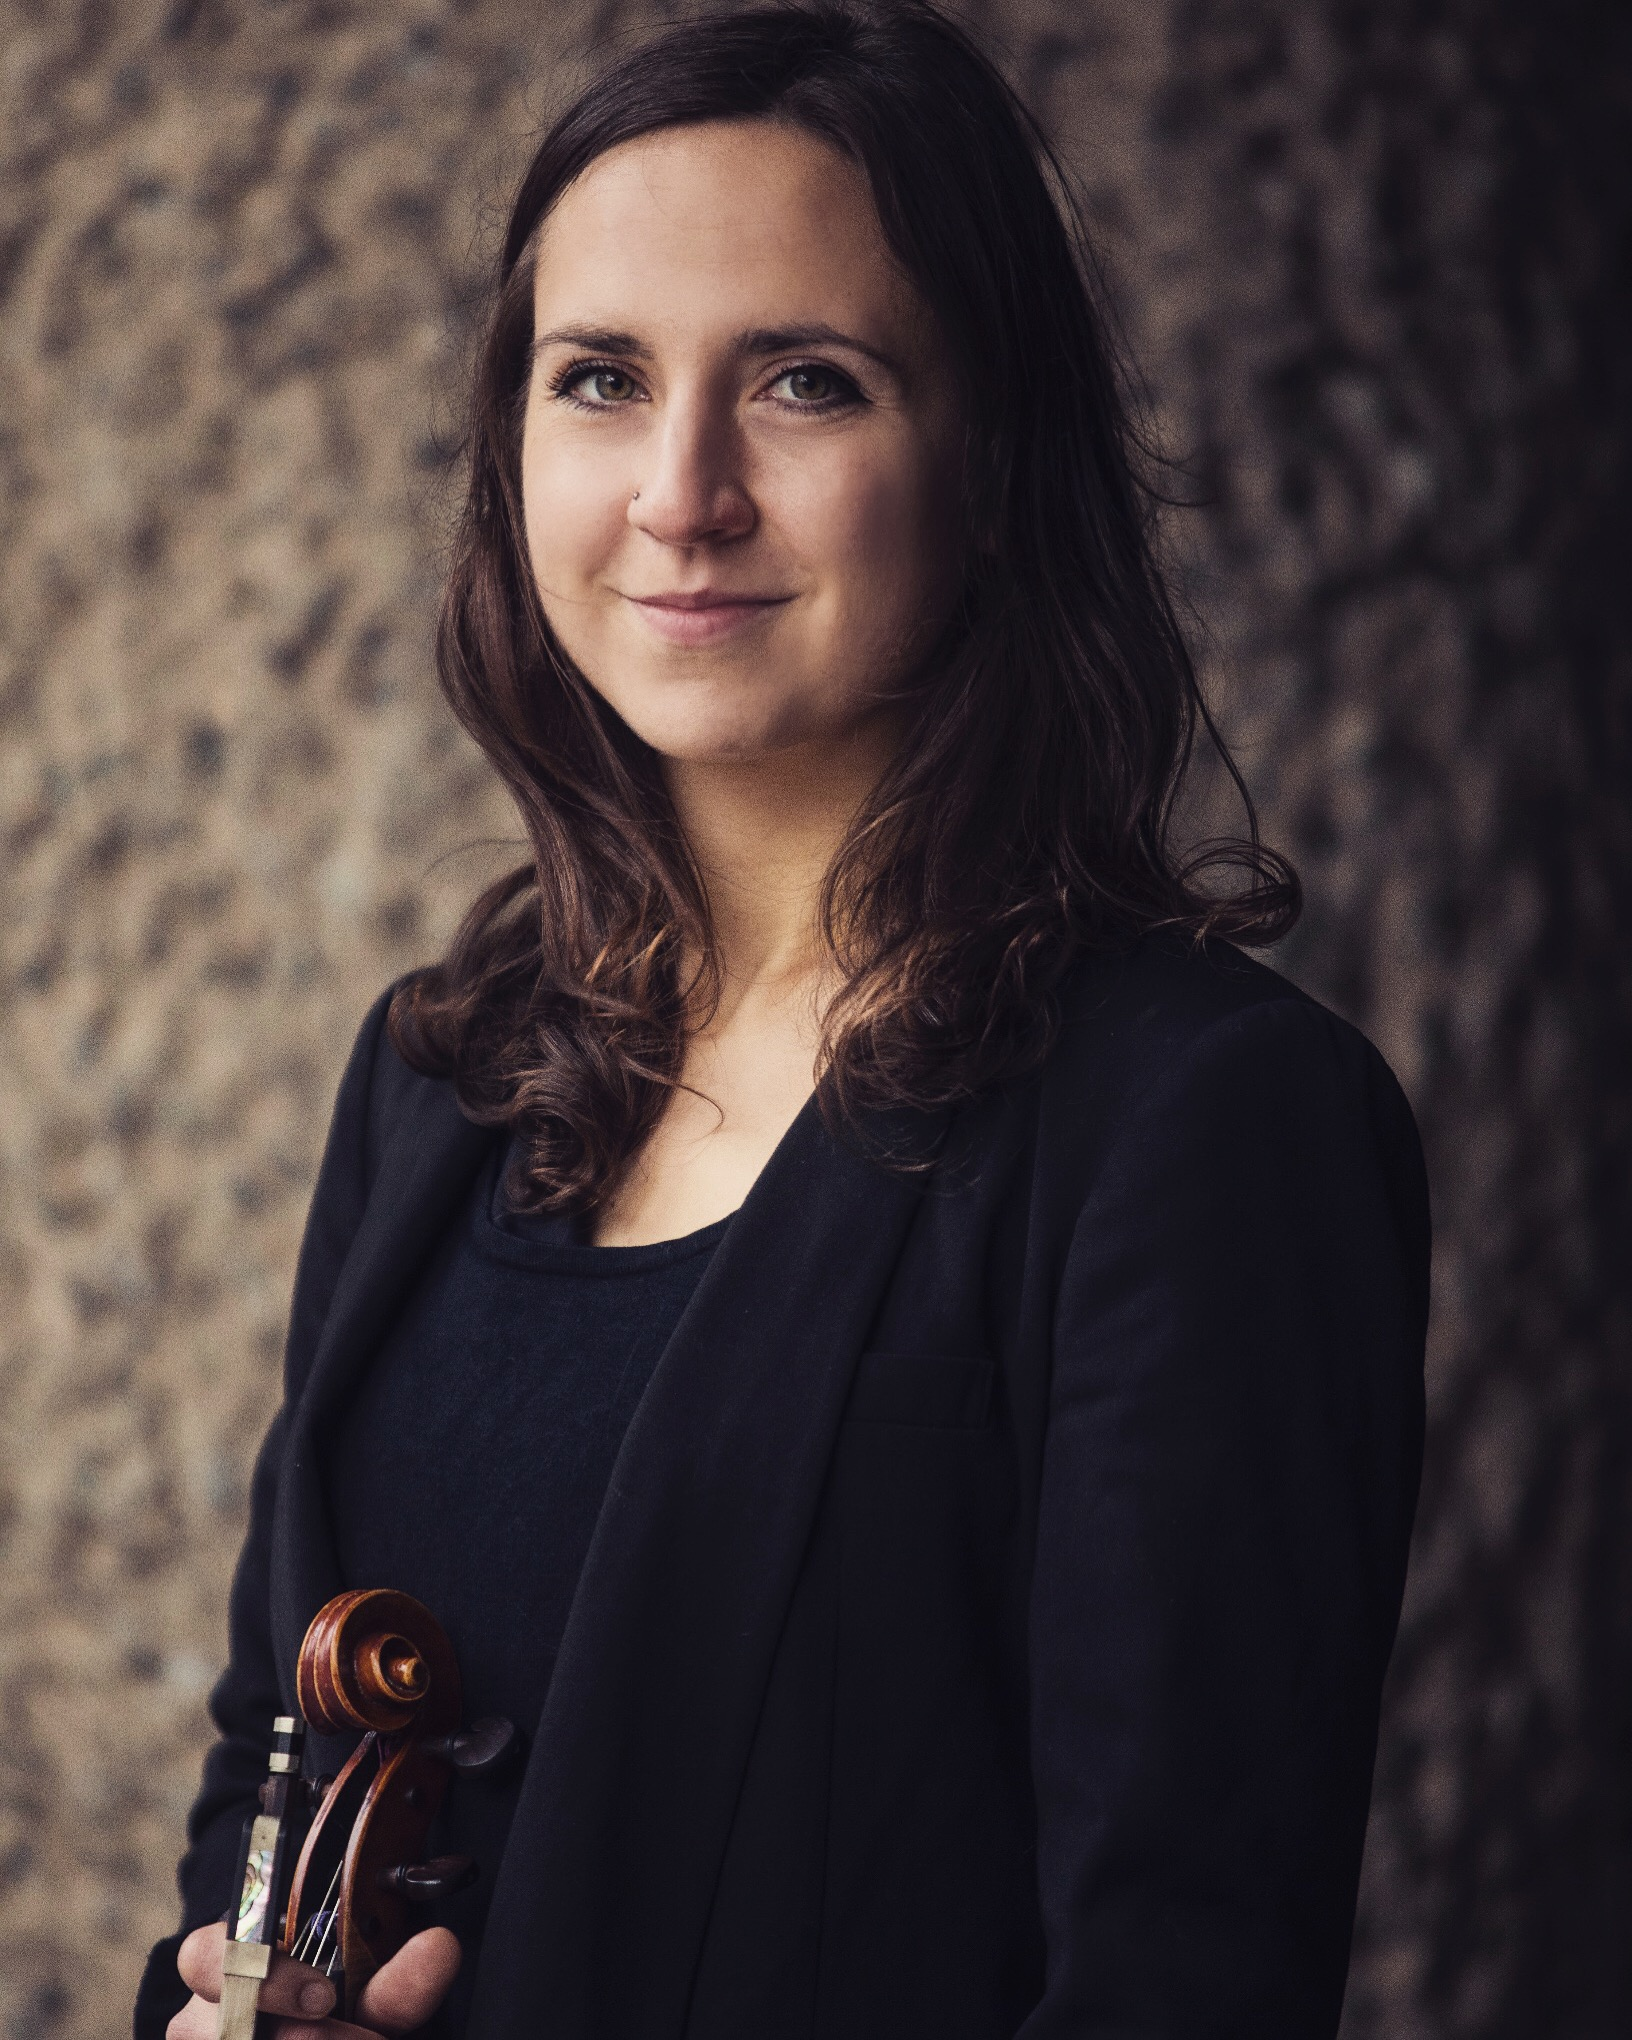 Luba Tunnicliffe - ViolaLuba Tunnicliffe has performed solo recitals at the Royal Festival Hall and St John's Smith Square, and made her debut as concerto soloist with the Philharmonia Orchestra in June 2016. She won the Guildhall's Max and Peggy Morgan Award with the Bartok Viola Concerto and was viola soloist in Mozart's Sinfonia Concertante with Alexander Janiczek and the Guildhall Chamber Orchestra in Milton Court Concert Hall, Barbican. She is a recipient of the Philip and Dorothy Green Award for Young Artists through Making Music UK.She studied at the Guildhall School of Music and Drama with David Takeno and Pavlo Beznosiuk, and the Hochschule für Musik Hanns Eisler, Berlin with Simone Jandl. Previously, she studied with Jacky Woods at the Junior Royal Academy of Music.Luba performs regularly throughout the UK with her two award-winning chamber groups - the Pelléas Ensemble and the Ruisi String Quartet. They have both received awards from the Royal Philharmonic Society and the Tunnell Trust, and have appeared on BBC Radio 3's 'In Tune'.